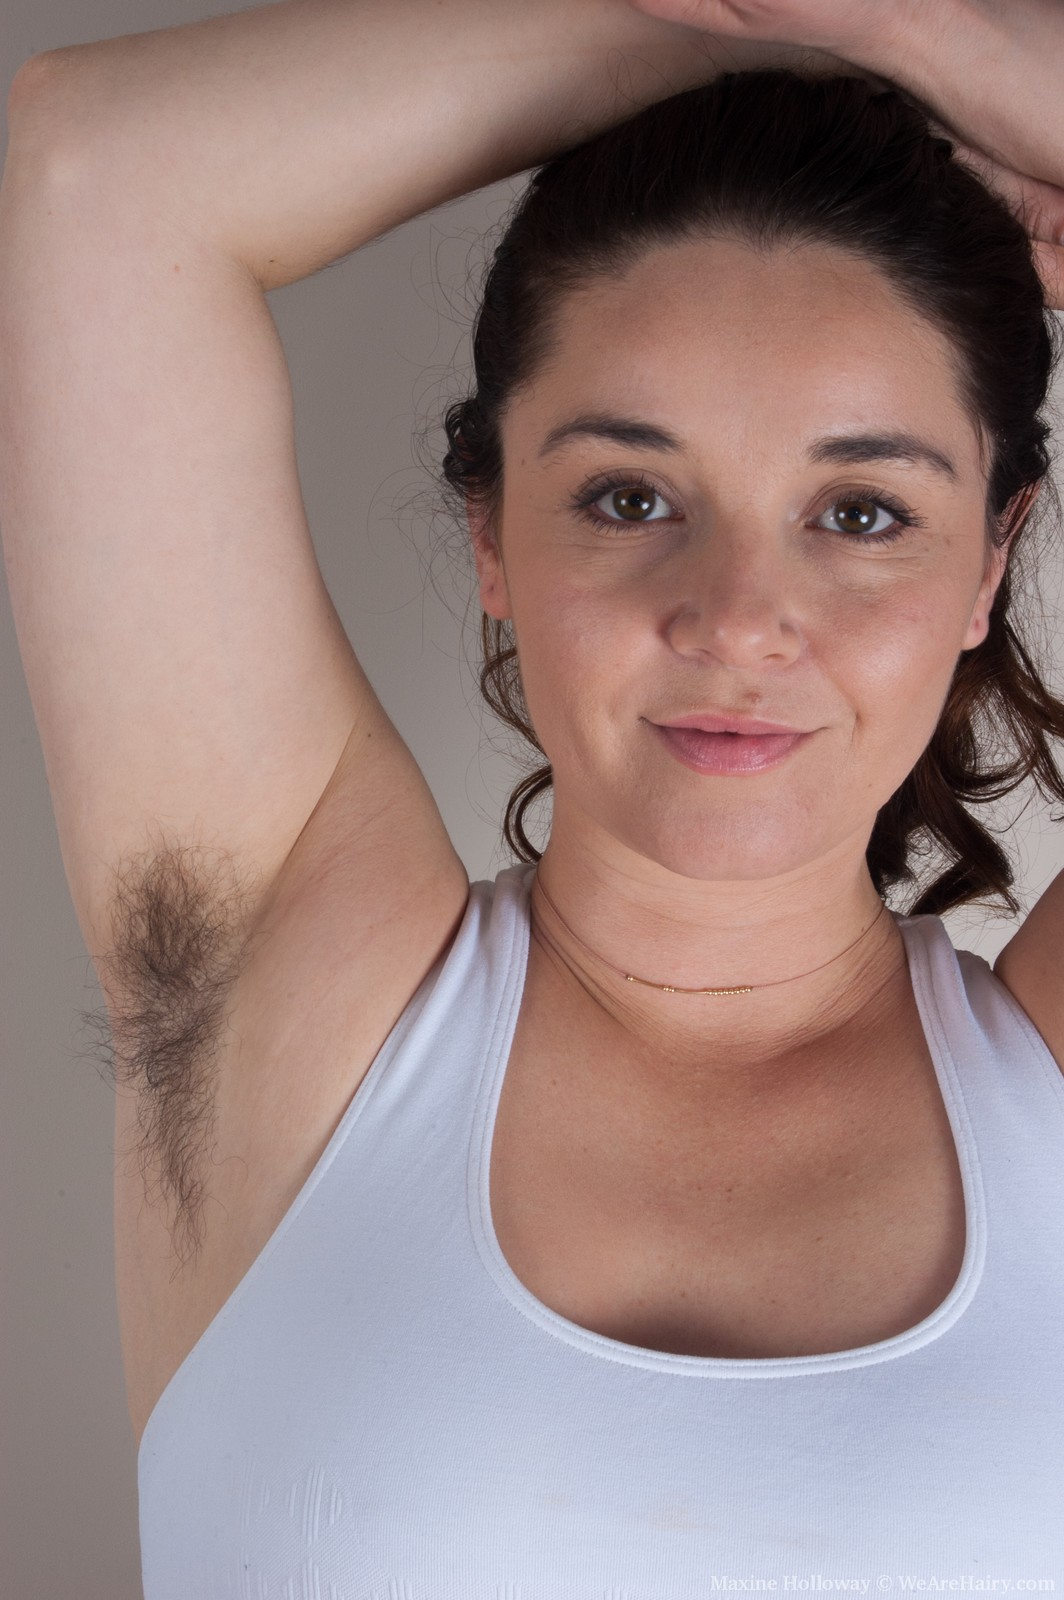 Pictures of nude extremely hairy women